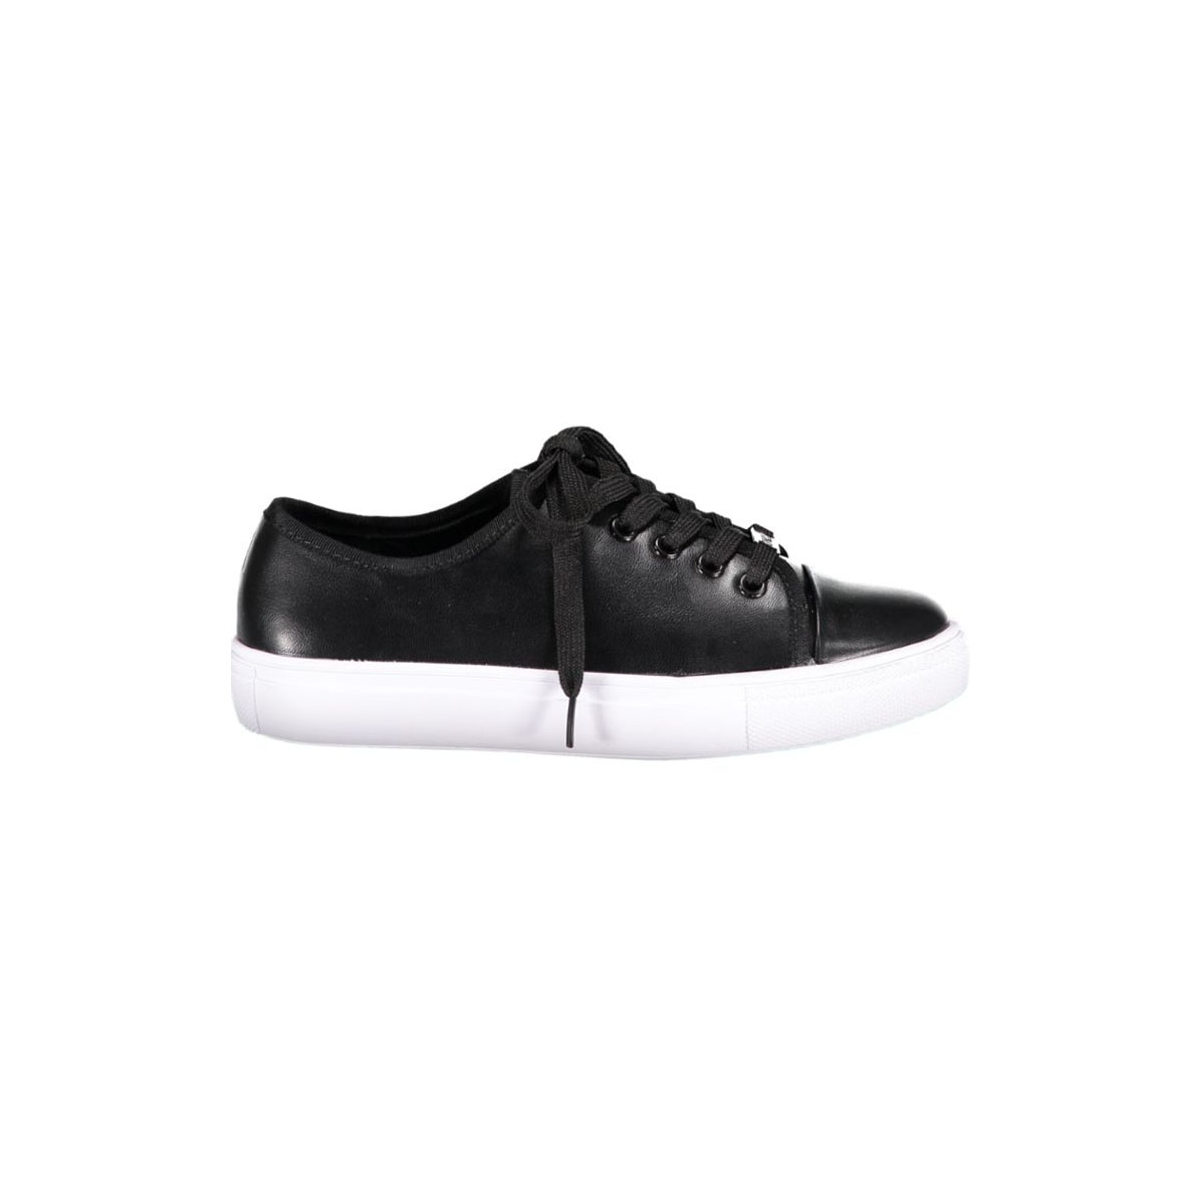 onlsage sneaker 15123637 only sneaker black/white sole